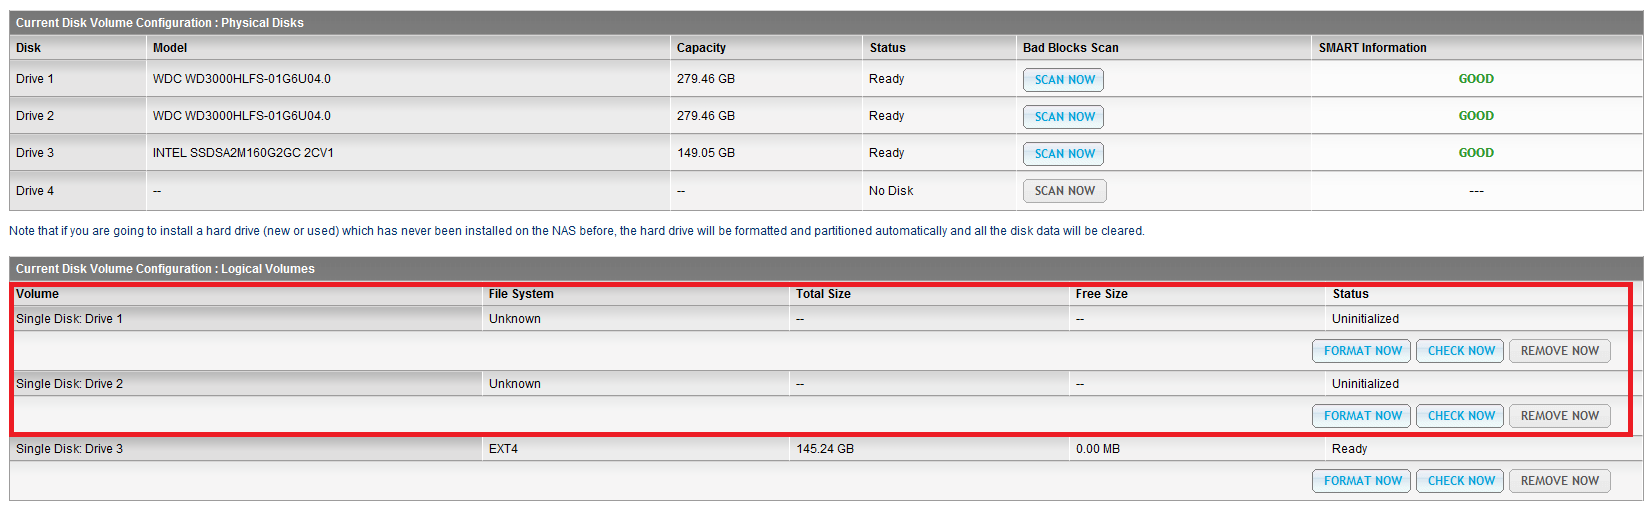 How To Troubleshoot a Broken RAID Volume On a QNAP Storage Device